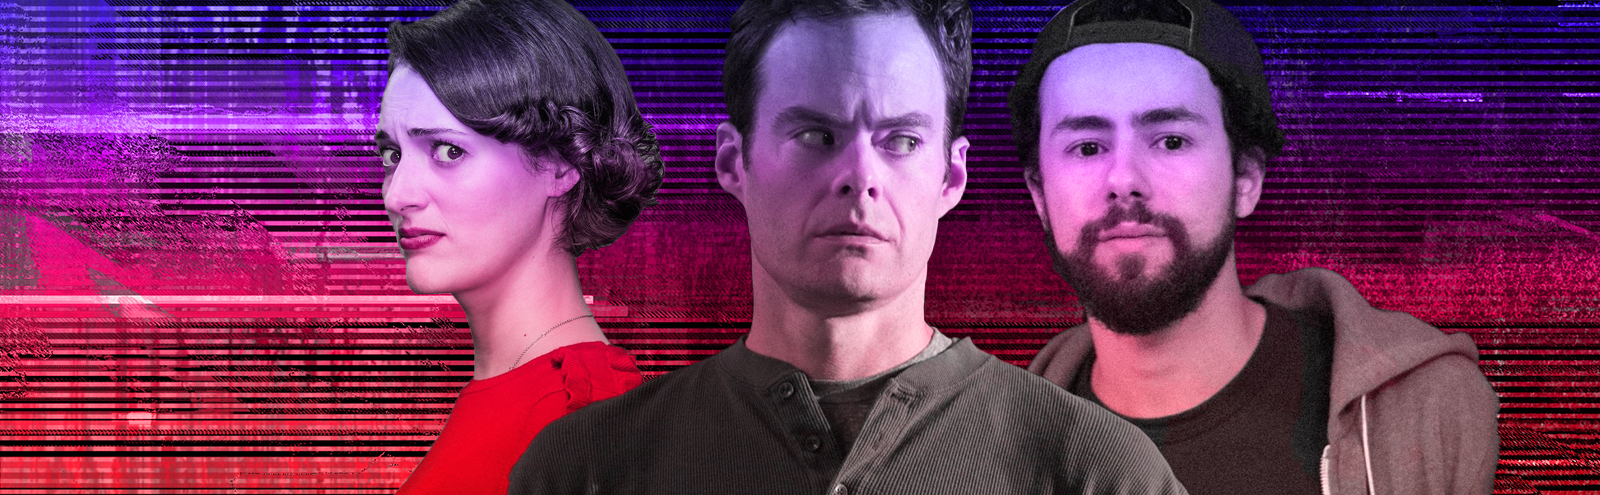 The Best Dramedy Shows Streaming Right Now